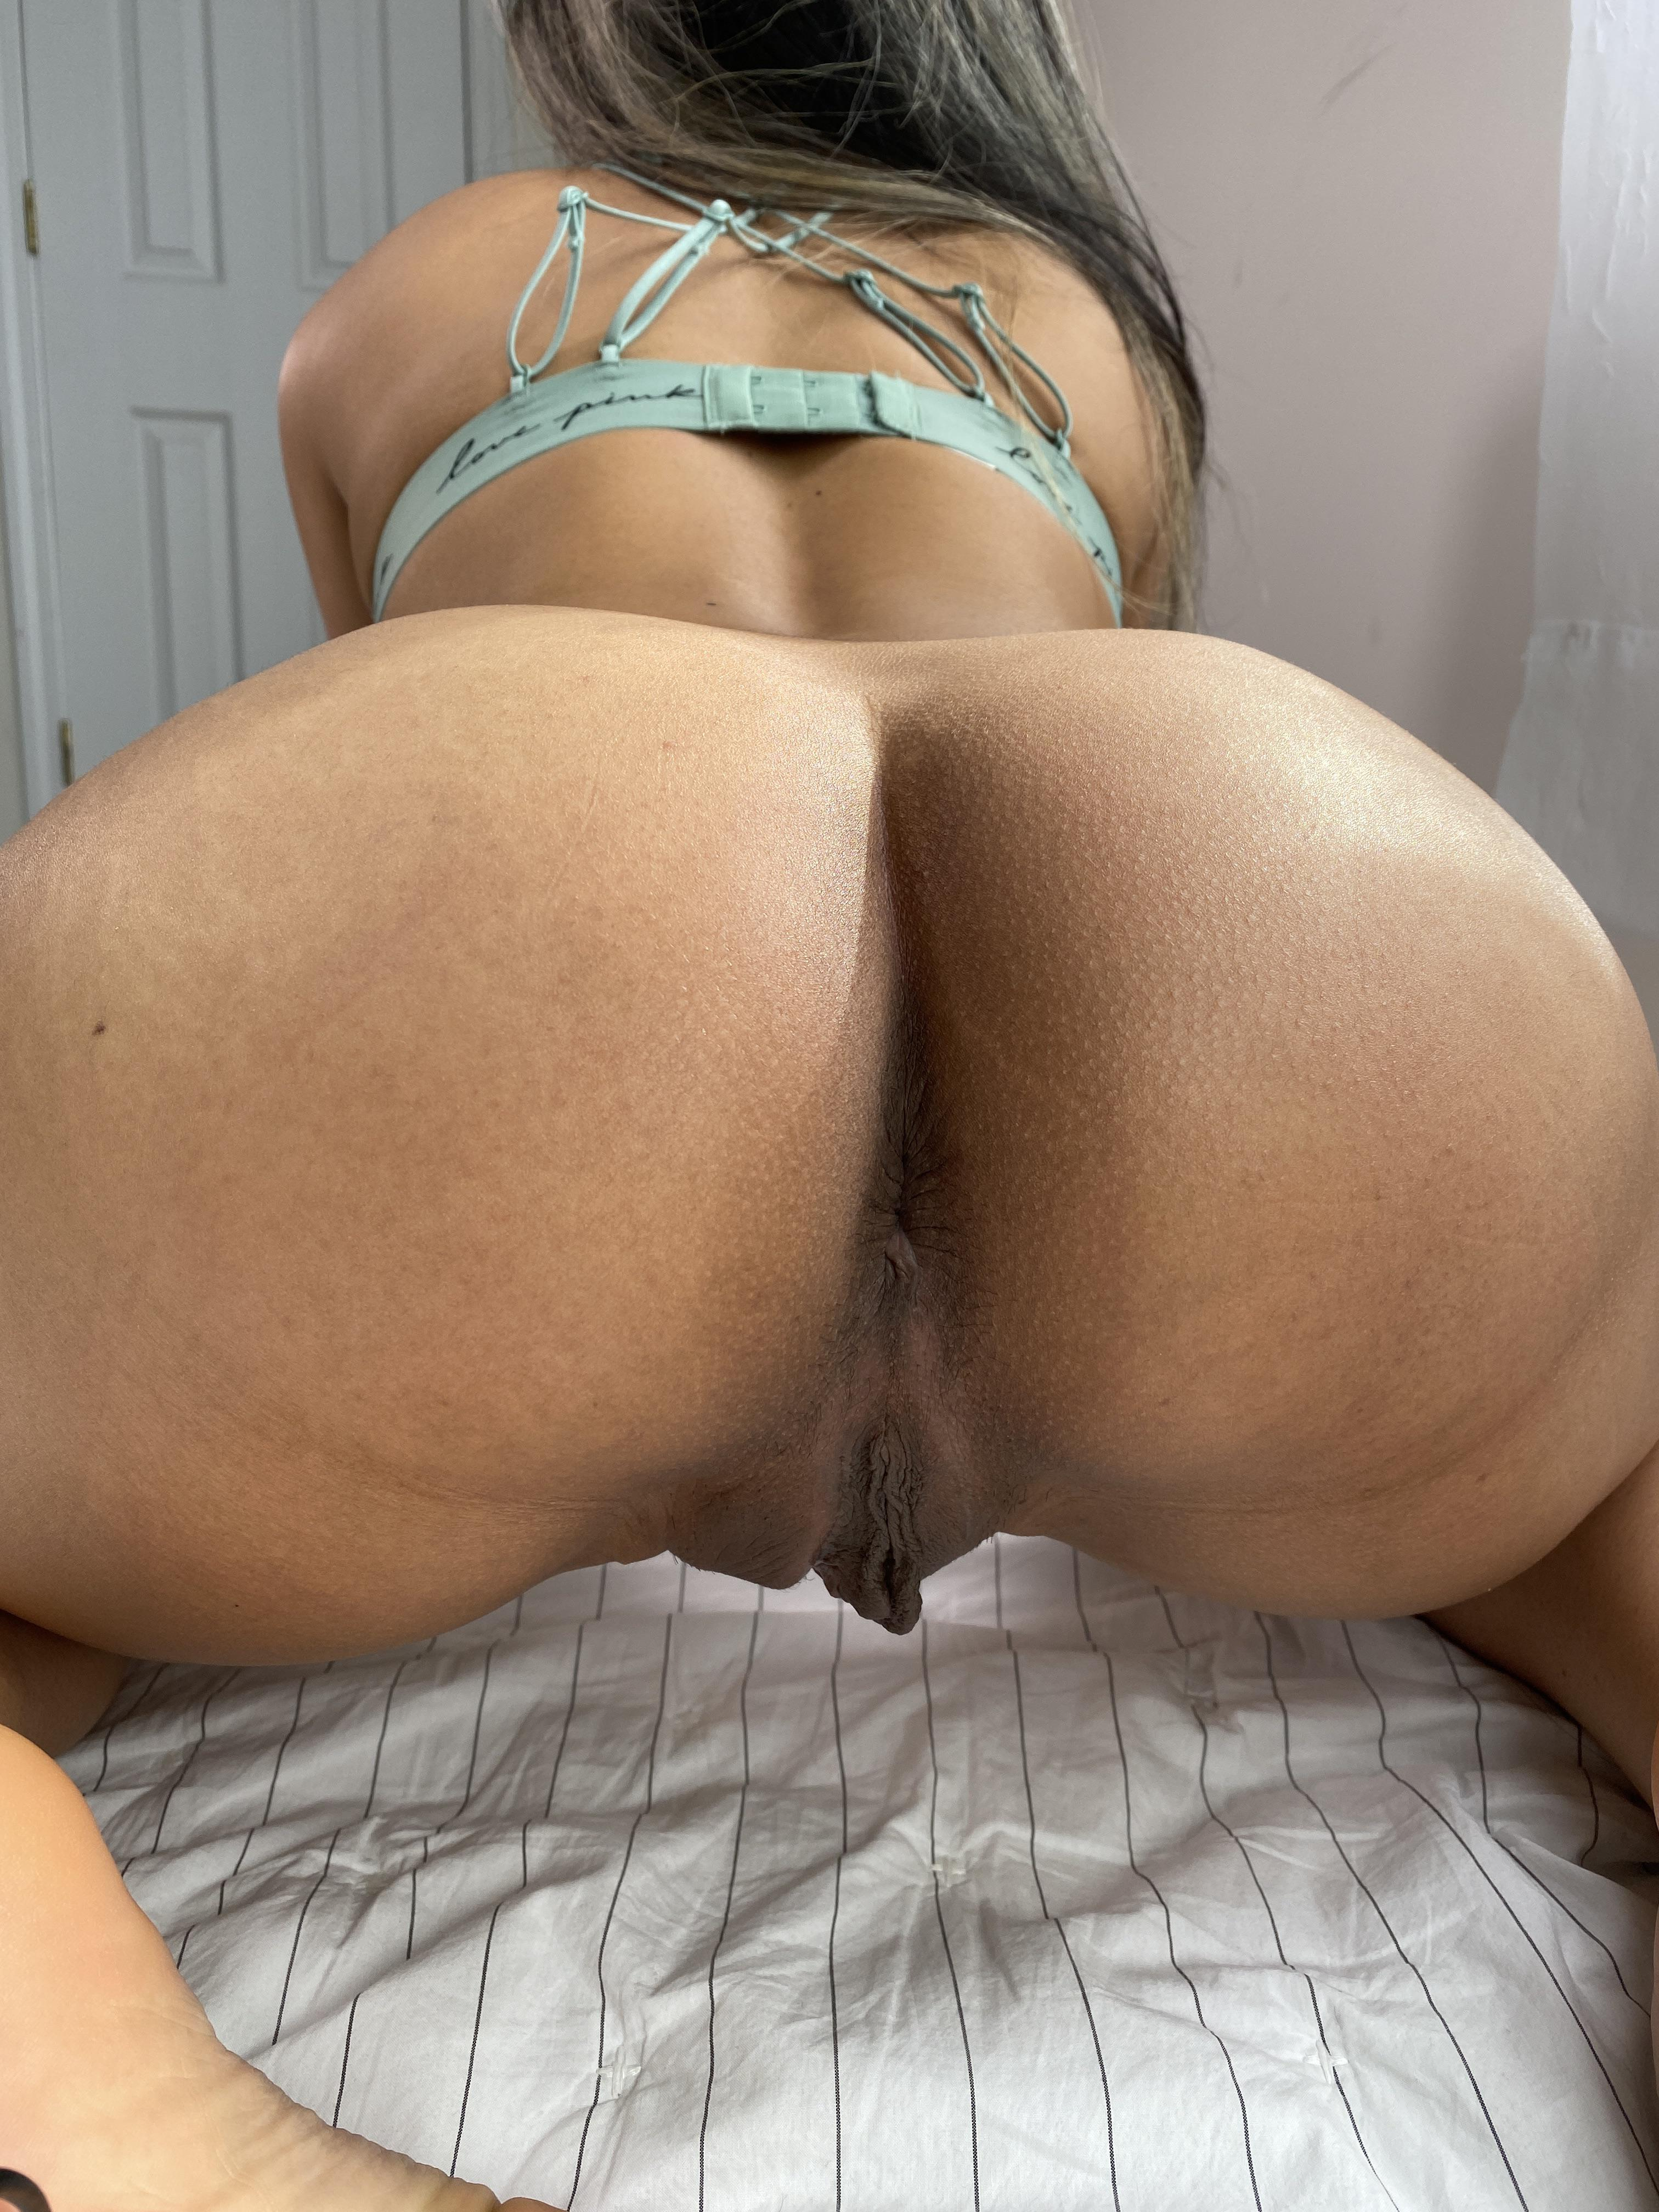 One of our naked asian pics called Would you fuck my phat ass?